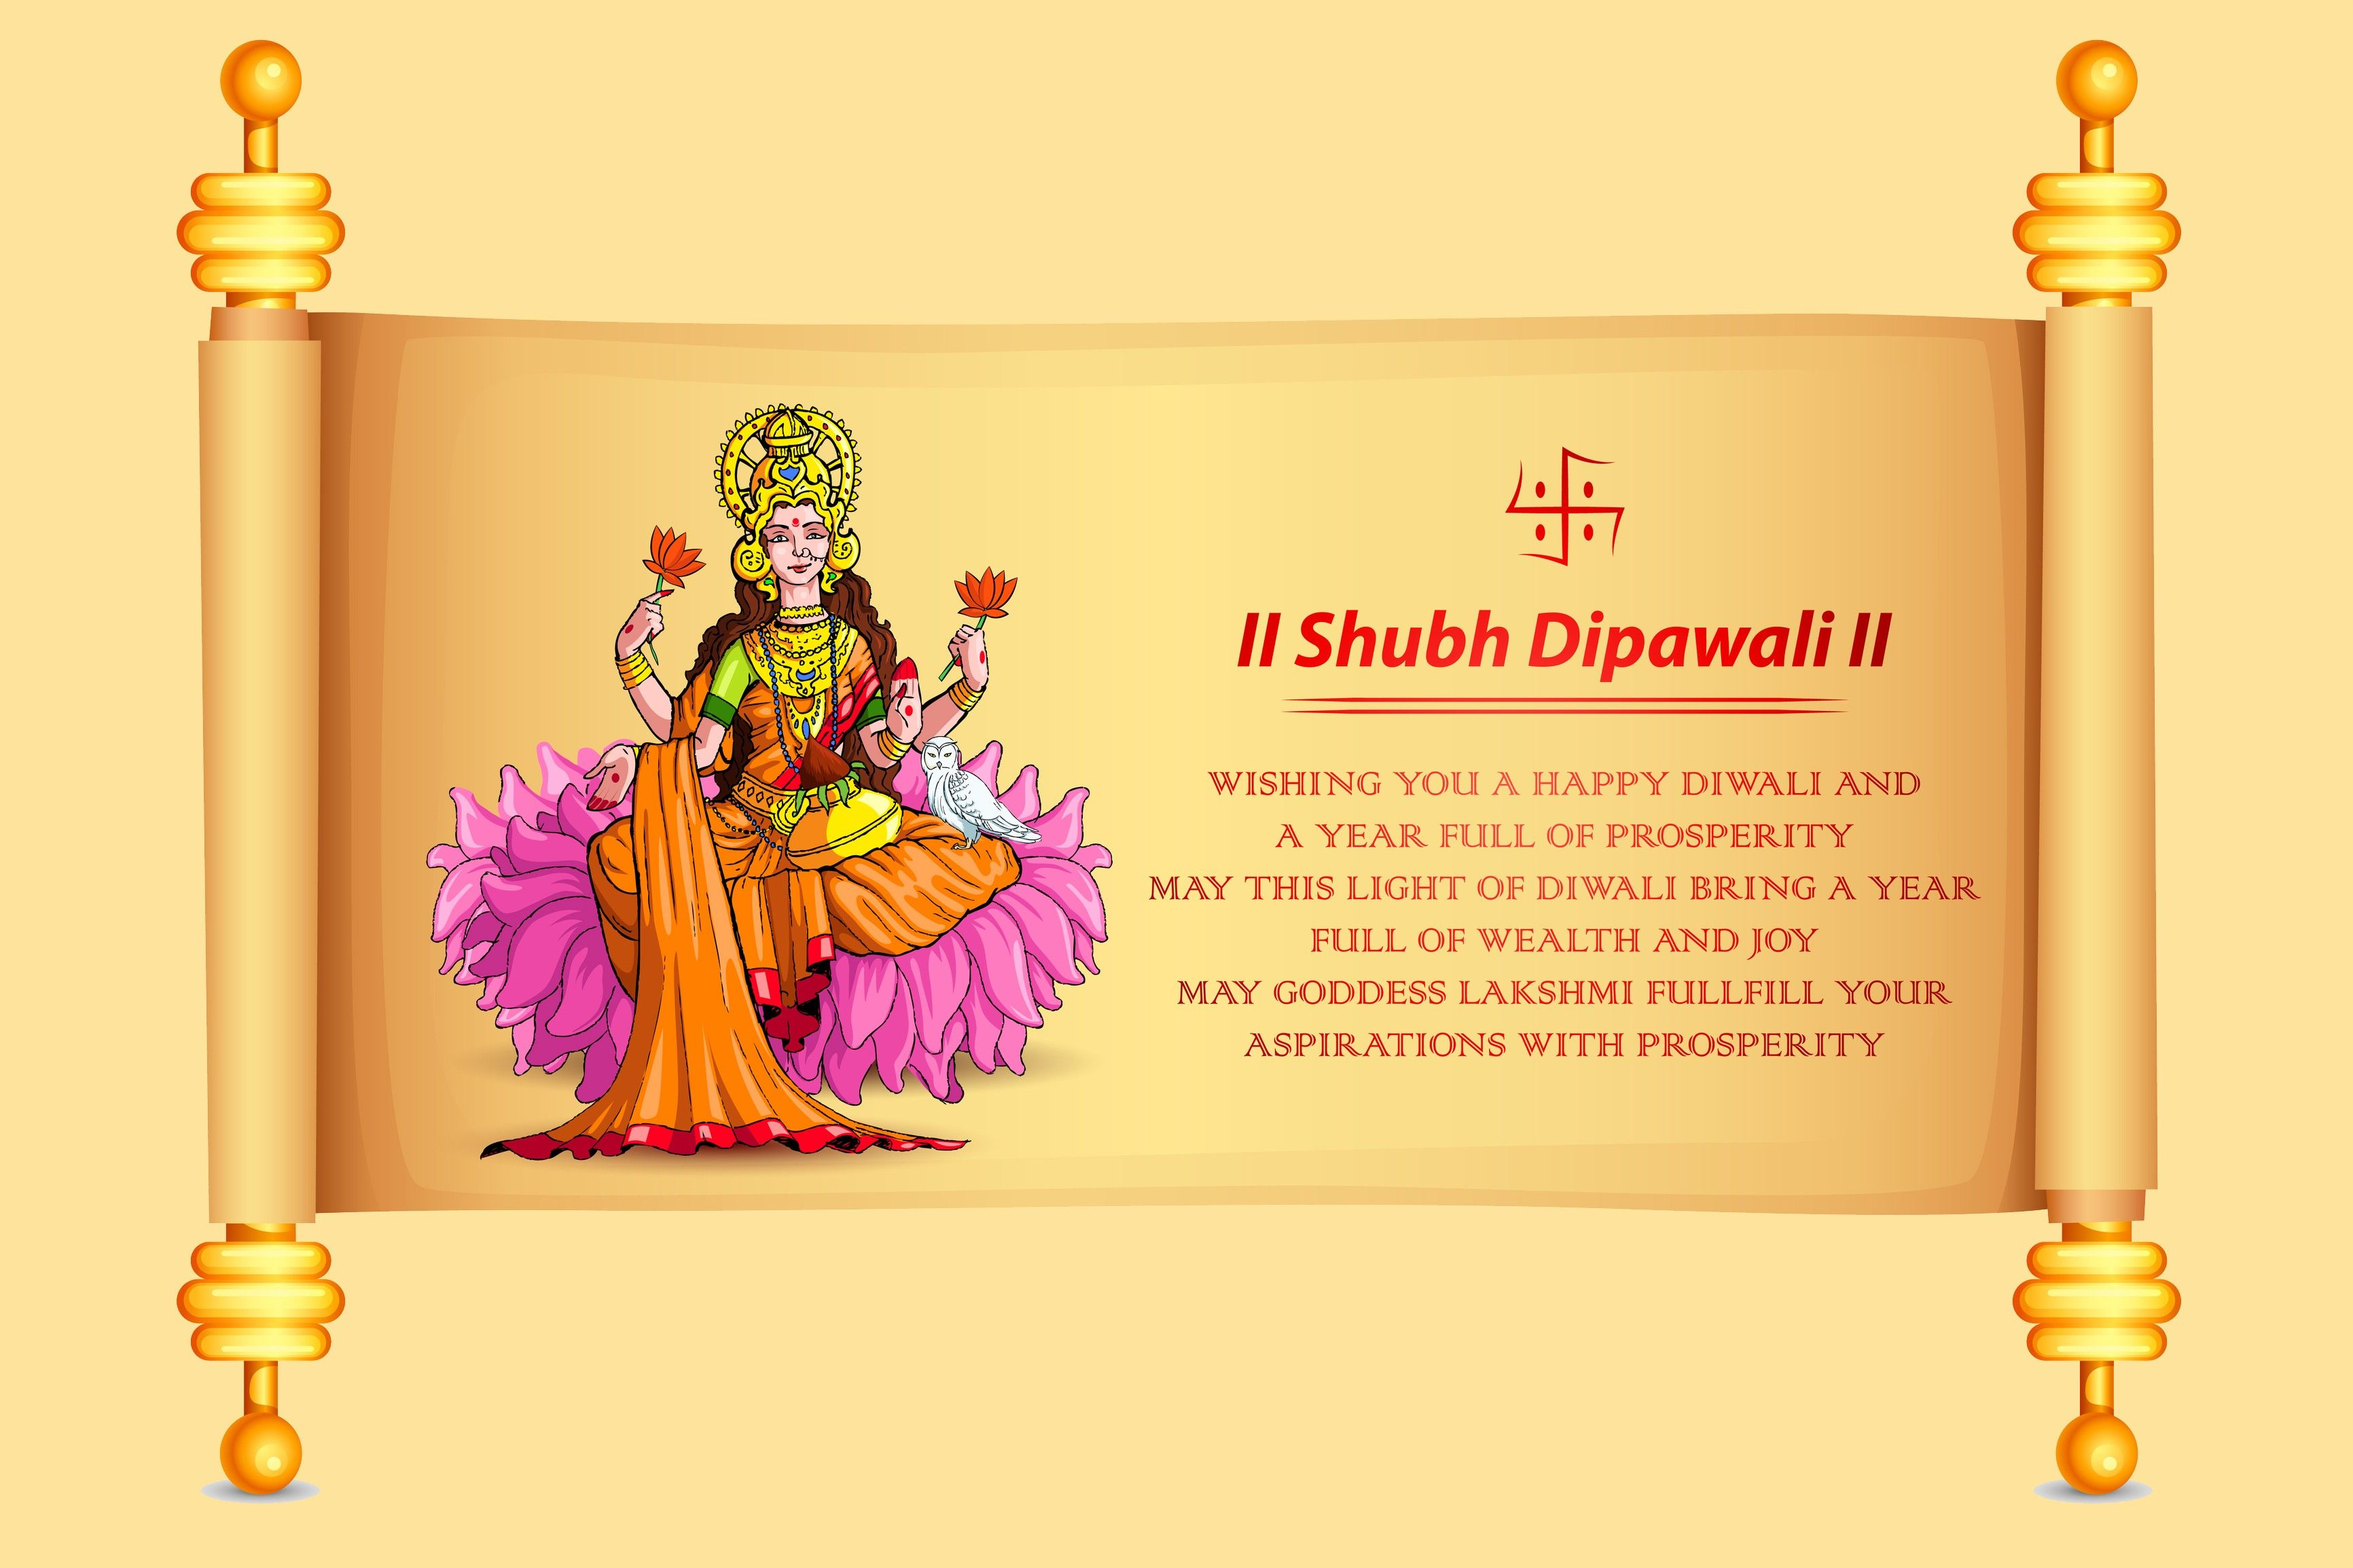 We wish the occasion of dhanteras endows health happiness happy deepavali wishes greeting cards hindu festiva subh deepawali and happy new year wishes quotes hindi greeting cards with name editor free subh kristyandbryce Gallery